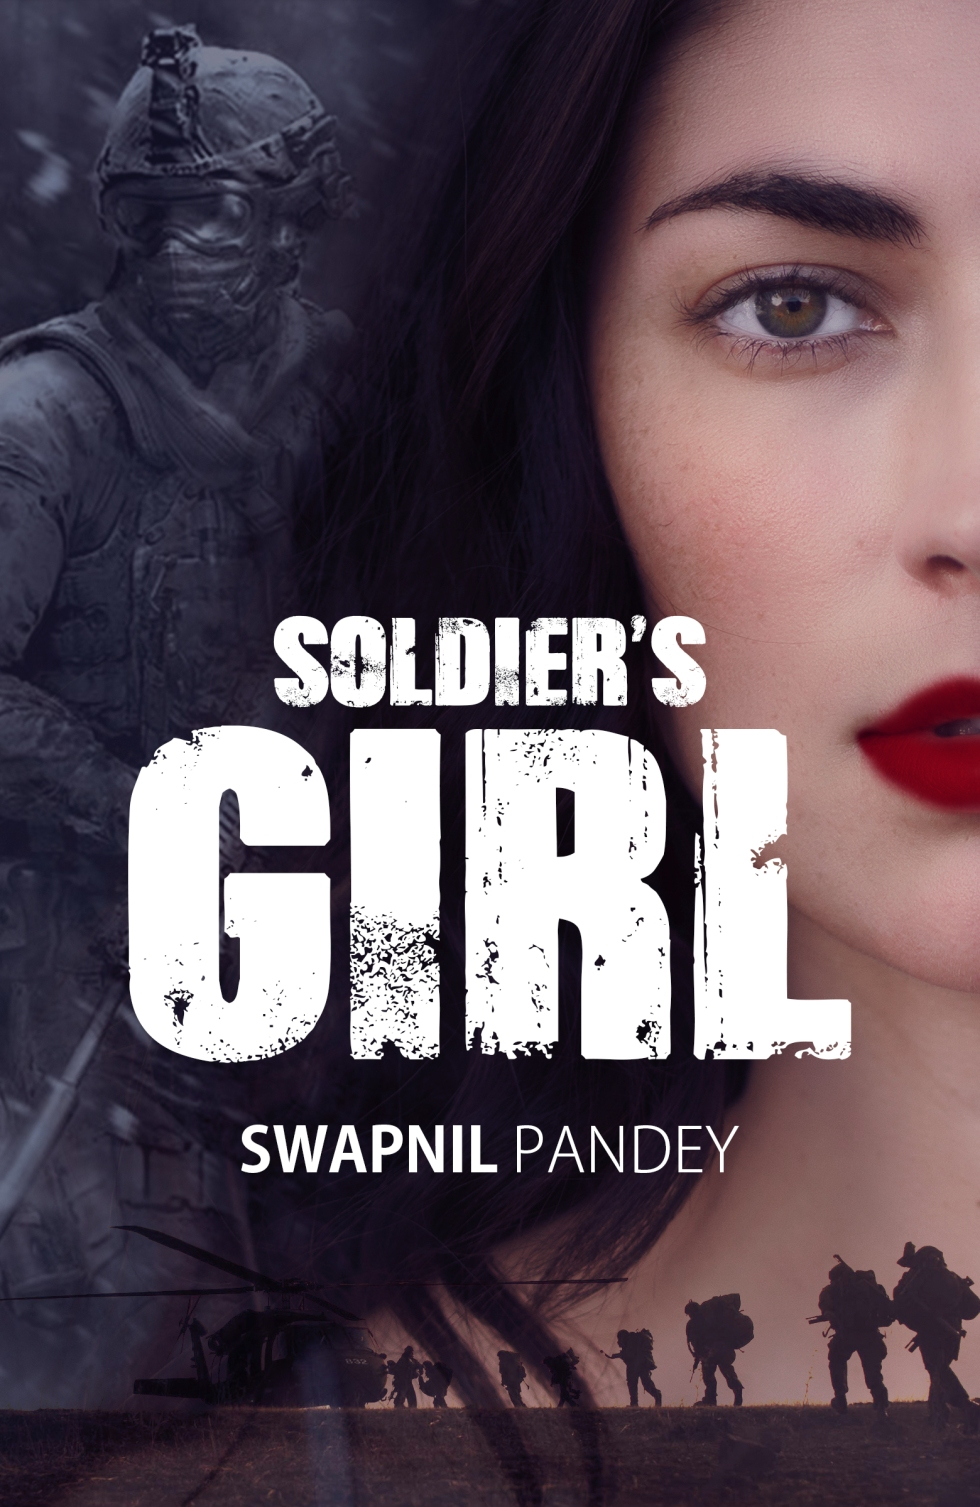 SOLDIER'S GIRL LOVE STORY OF A PARA COMMANDO swapnil pandey military romance army love story indian army wife officer girlfriend soldier's girl indian army love story army love military love army officer marriage girlfriend swapnil pandey wife army